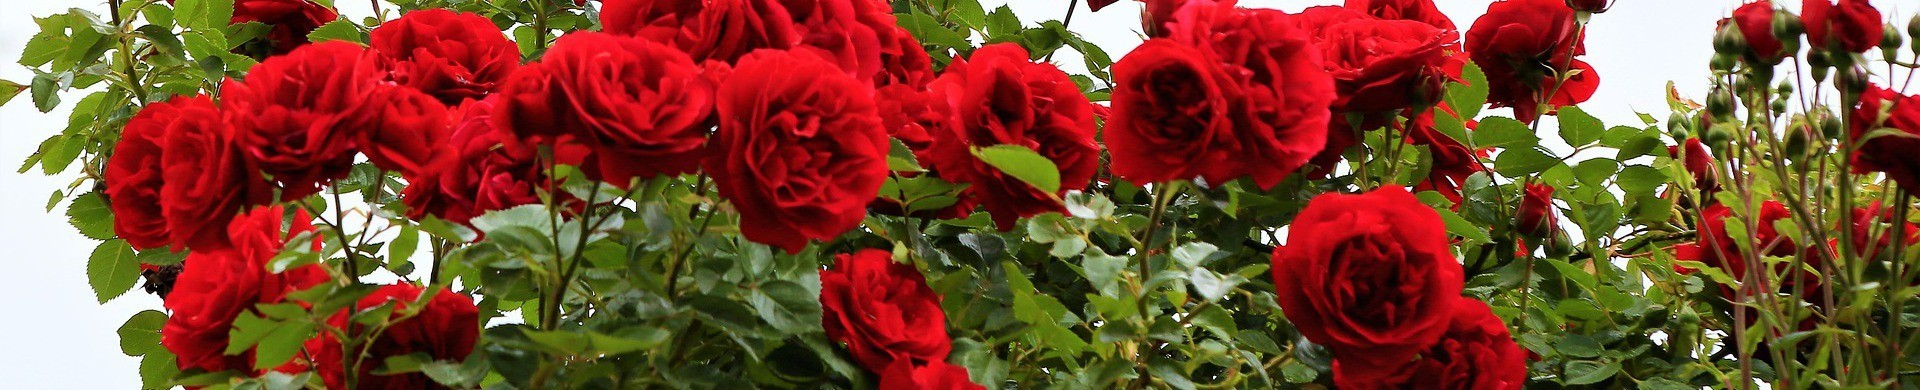 Buy Rose Bushes - Sale Rose Plants